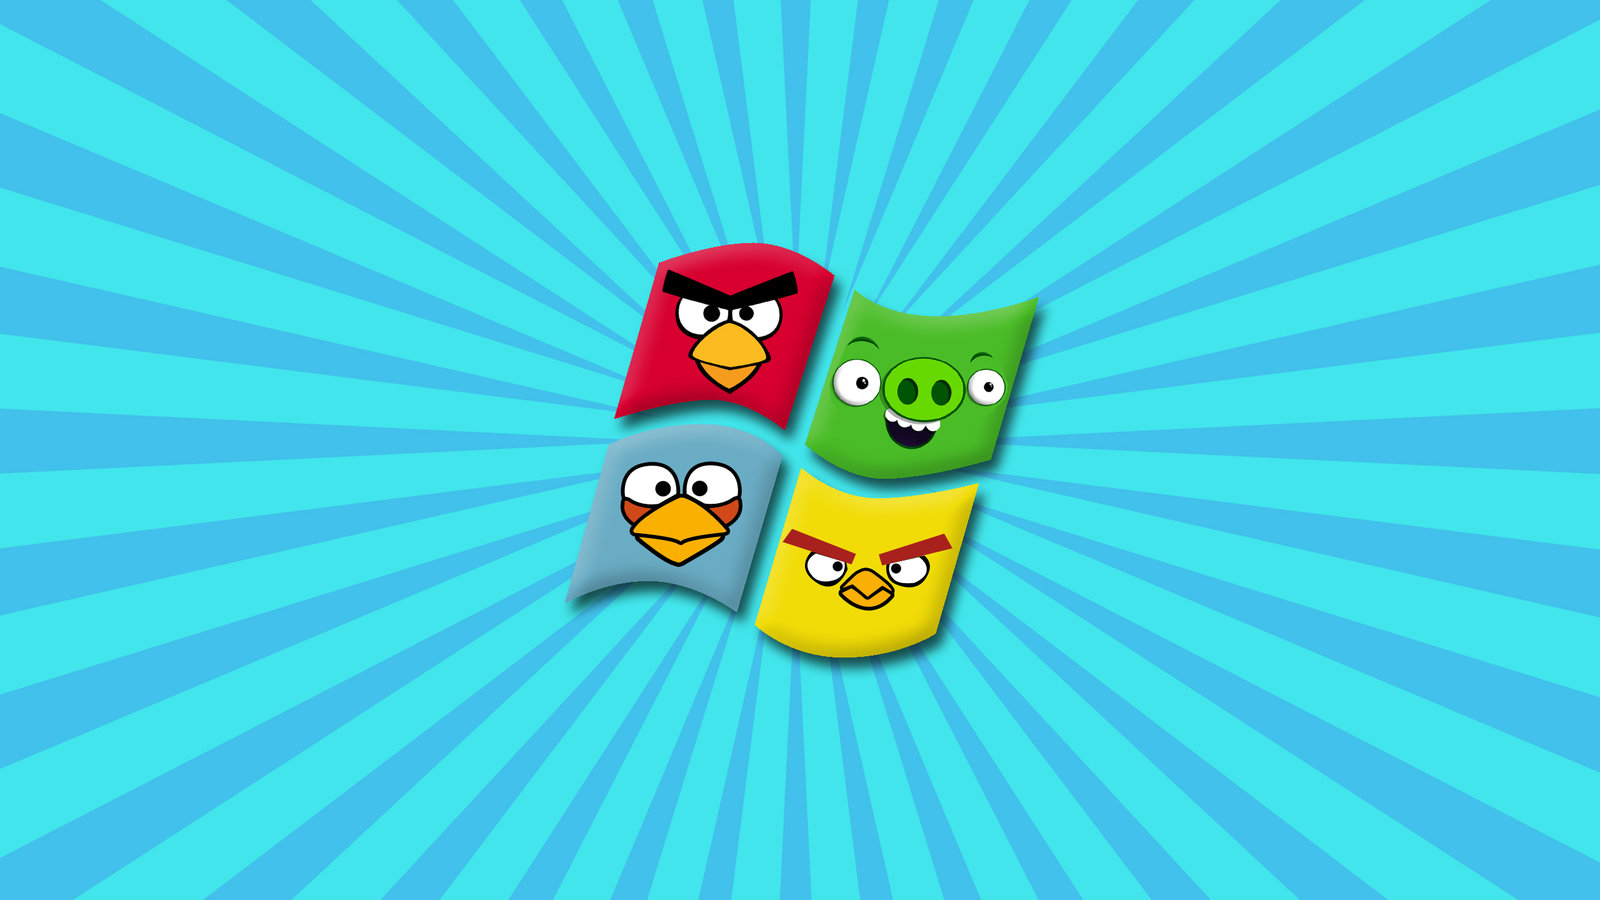 Windows 7 angry birds edition wallpaper Wallpaper Wide HD 1600x900